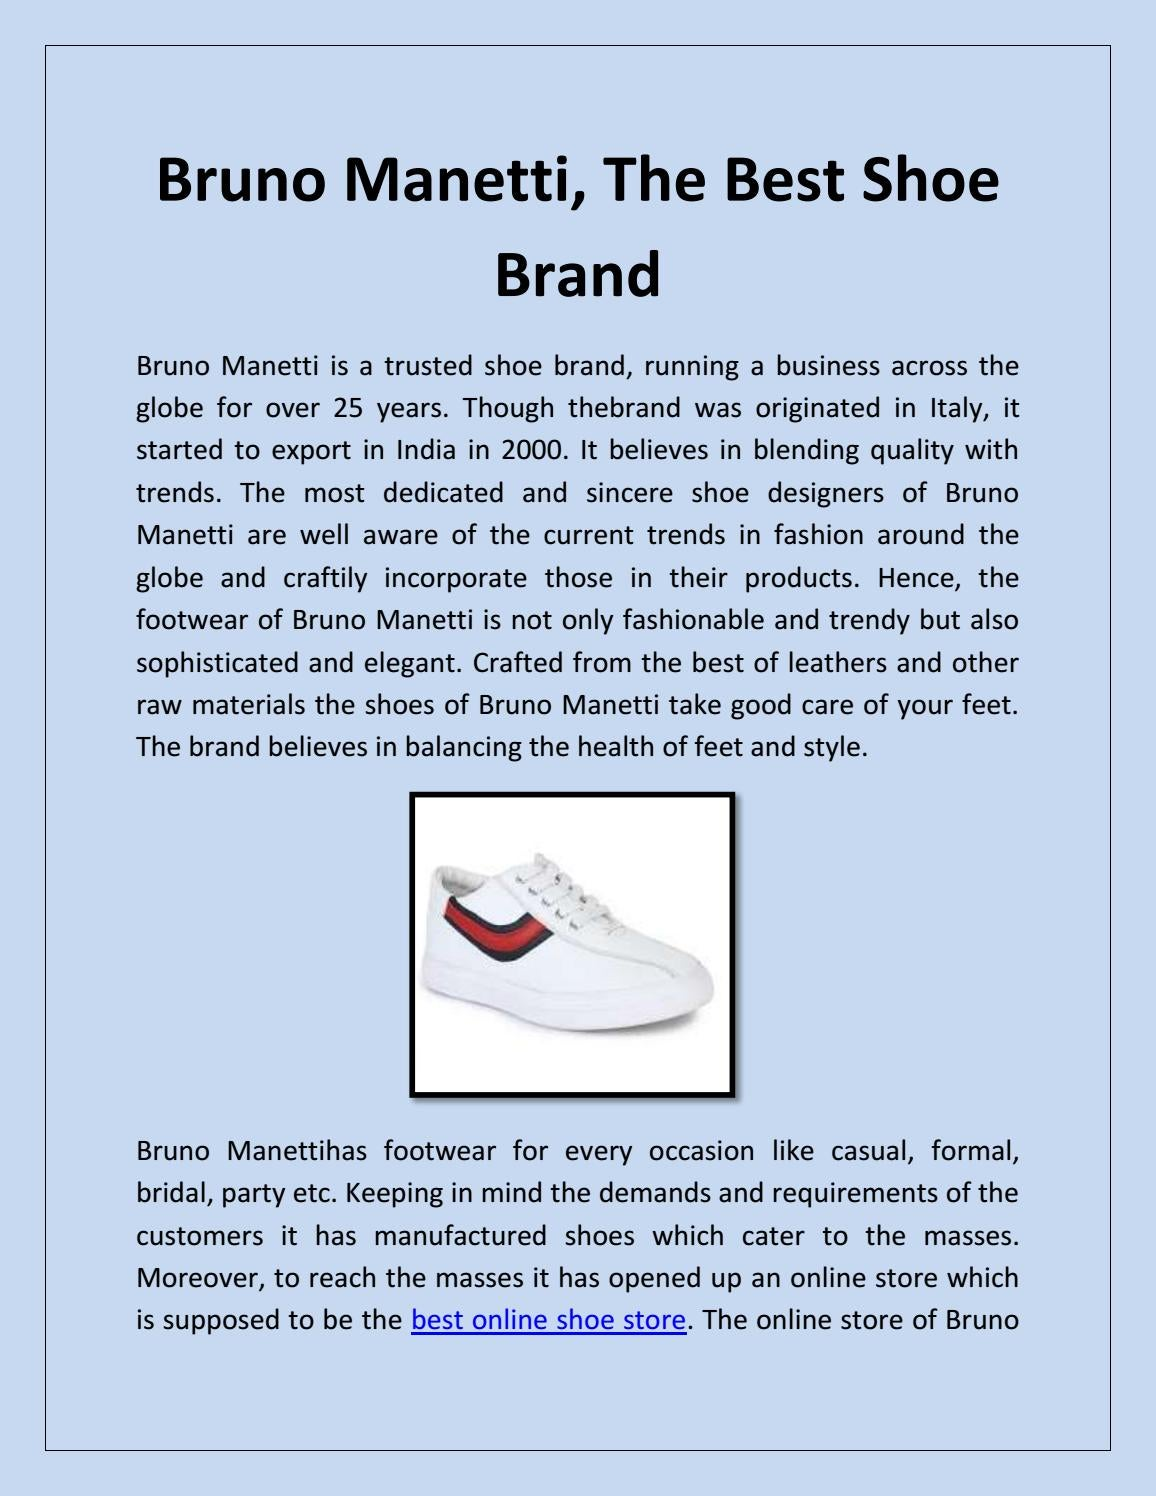 Bruno Manetti, The Best Shoe Brand by